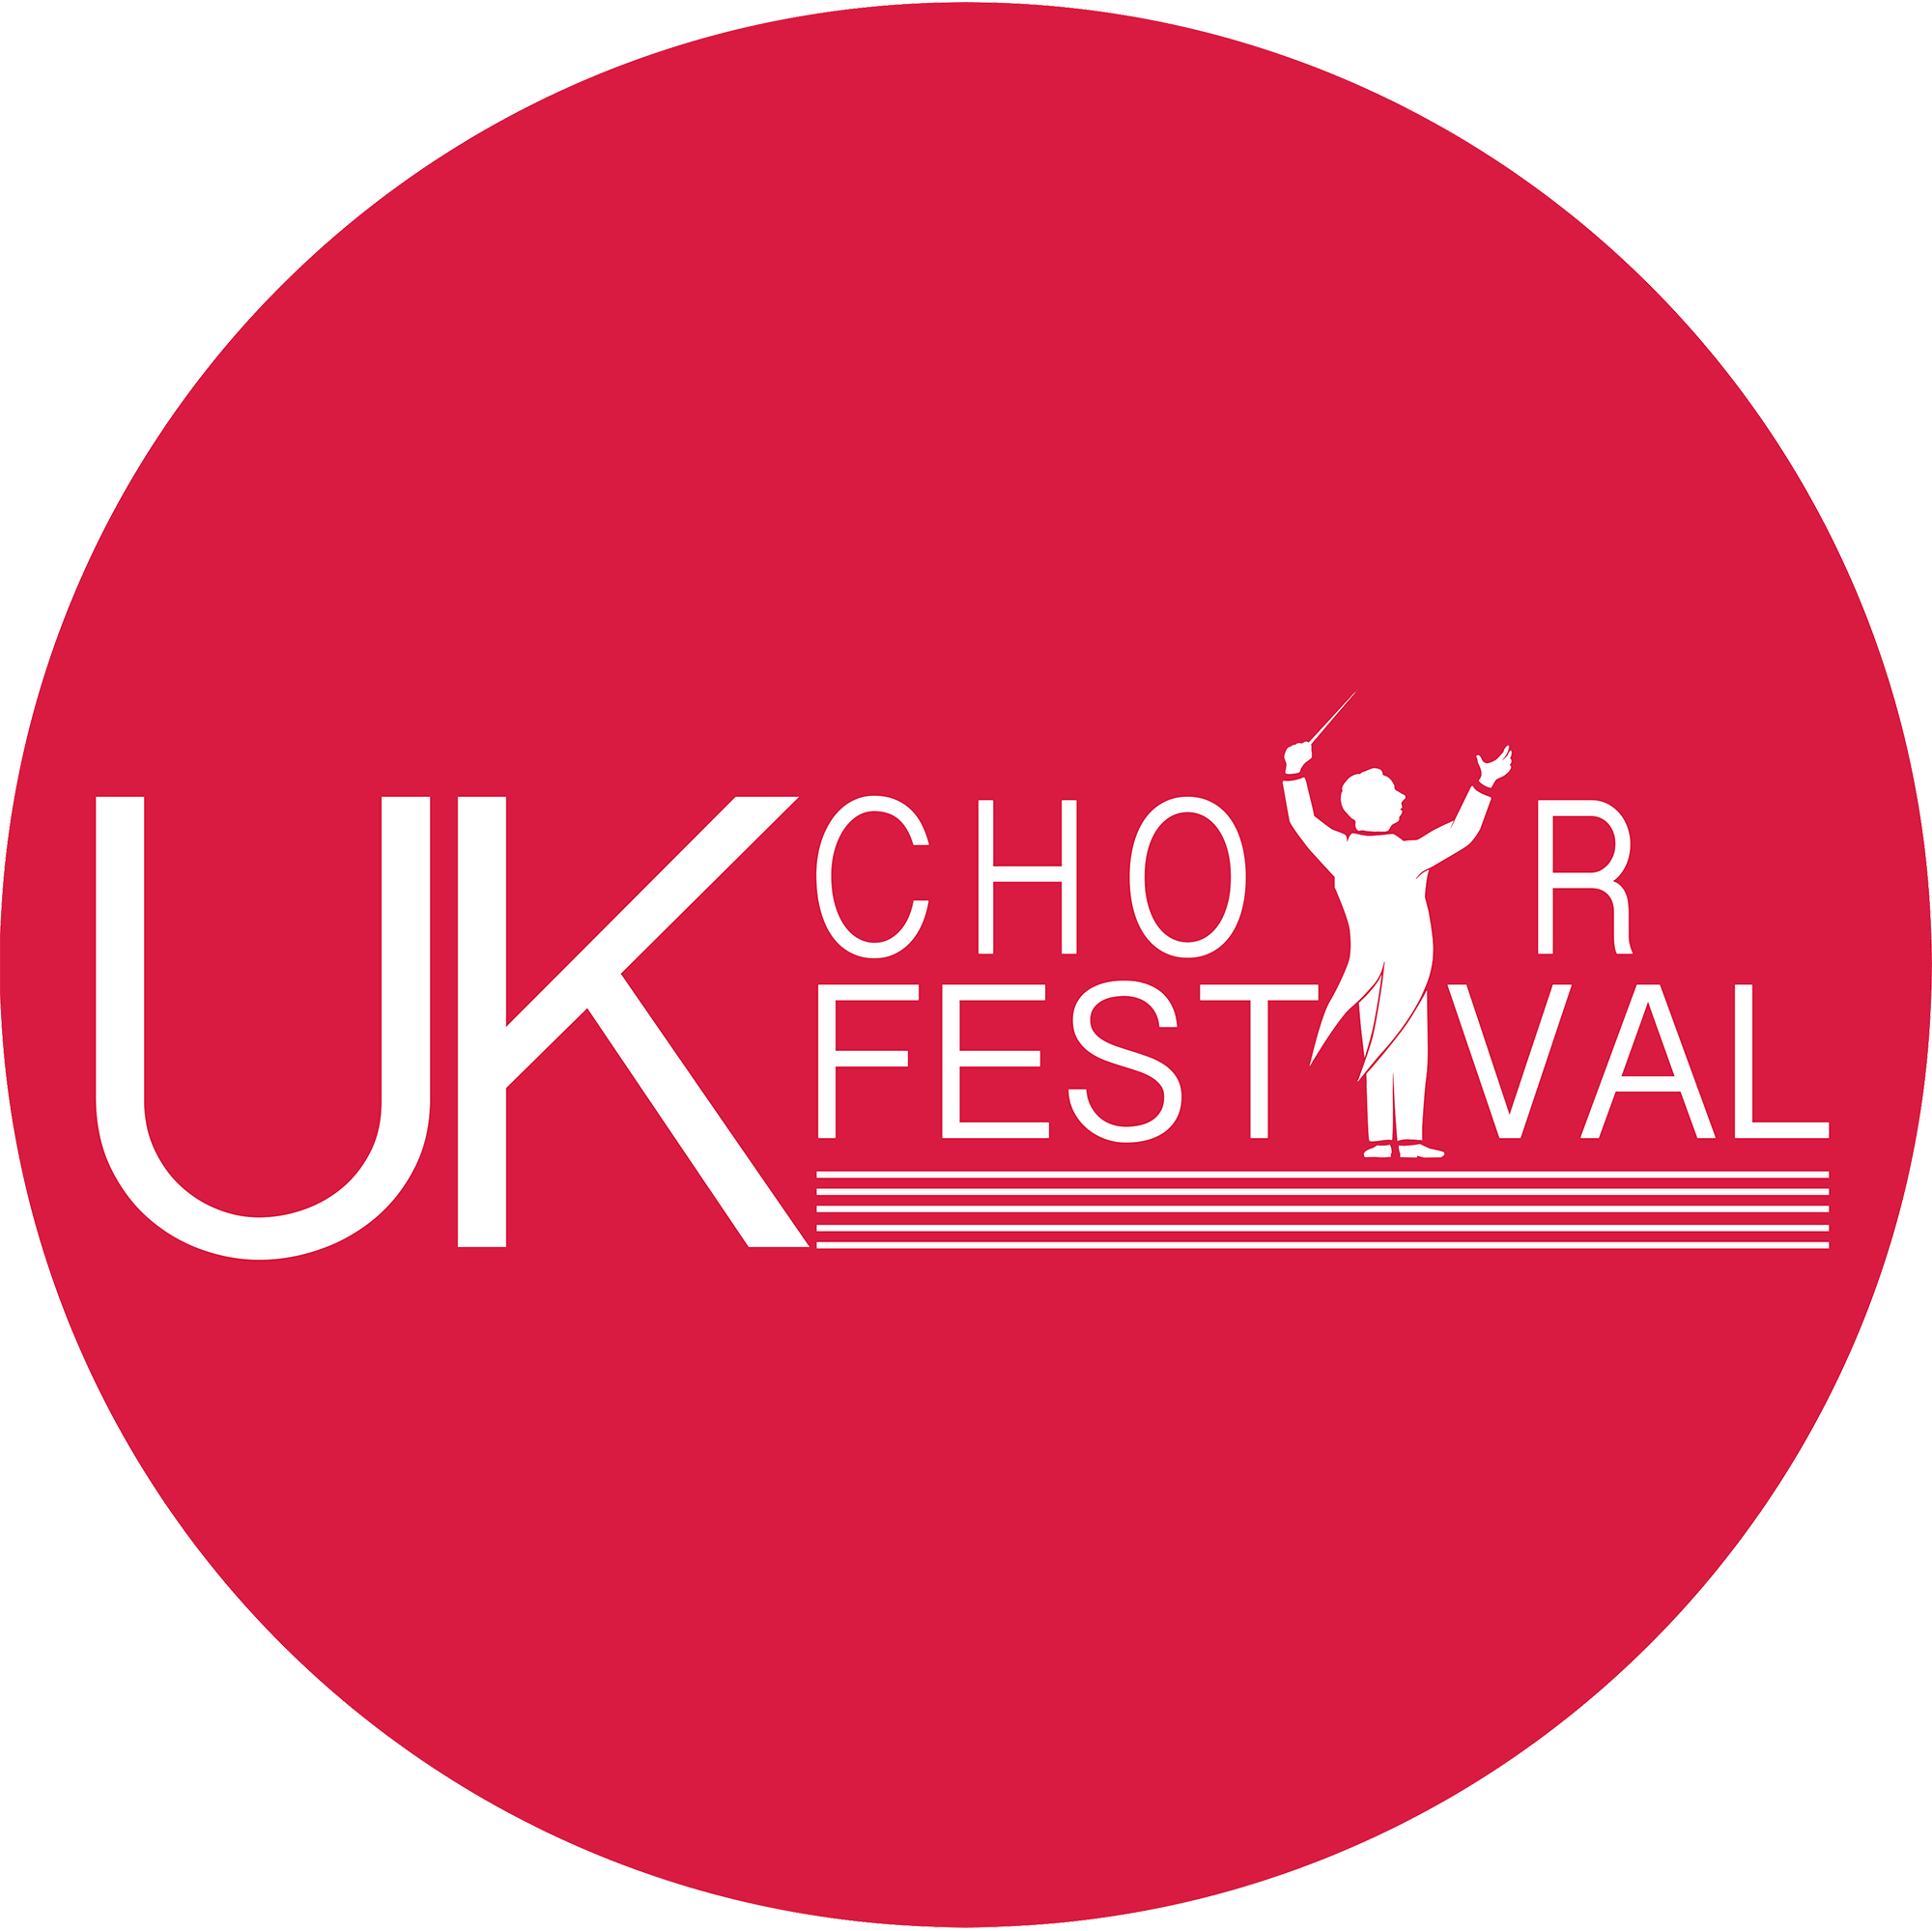 Schedule - UK Choir Festival